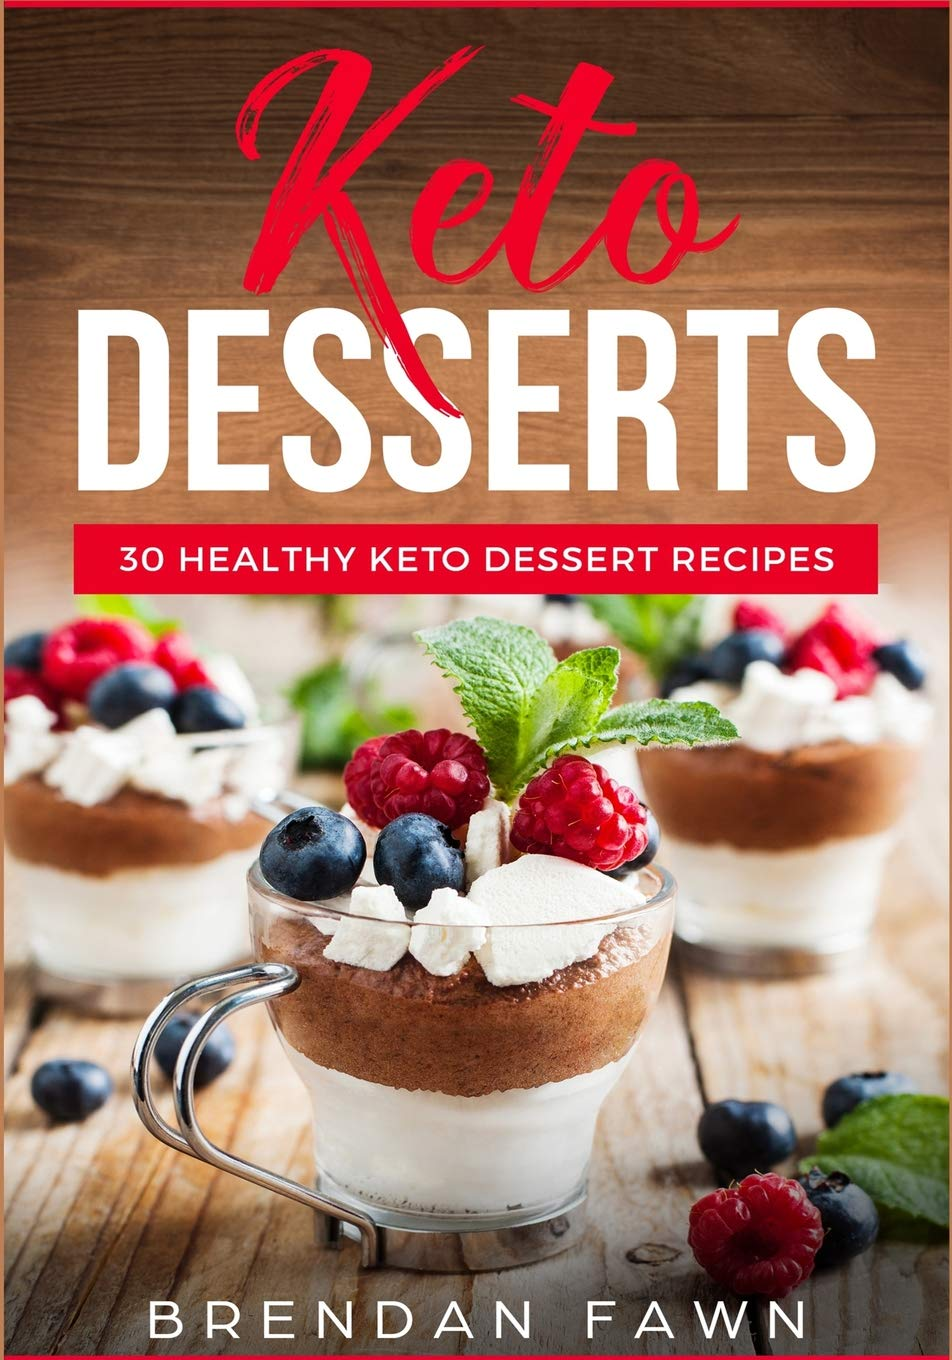 Keto-Friendly Dessert Recipes Keto Sweets  Youtube